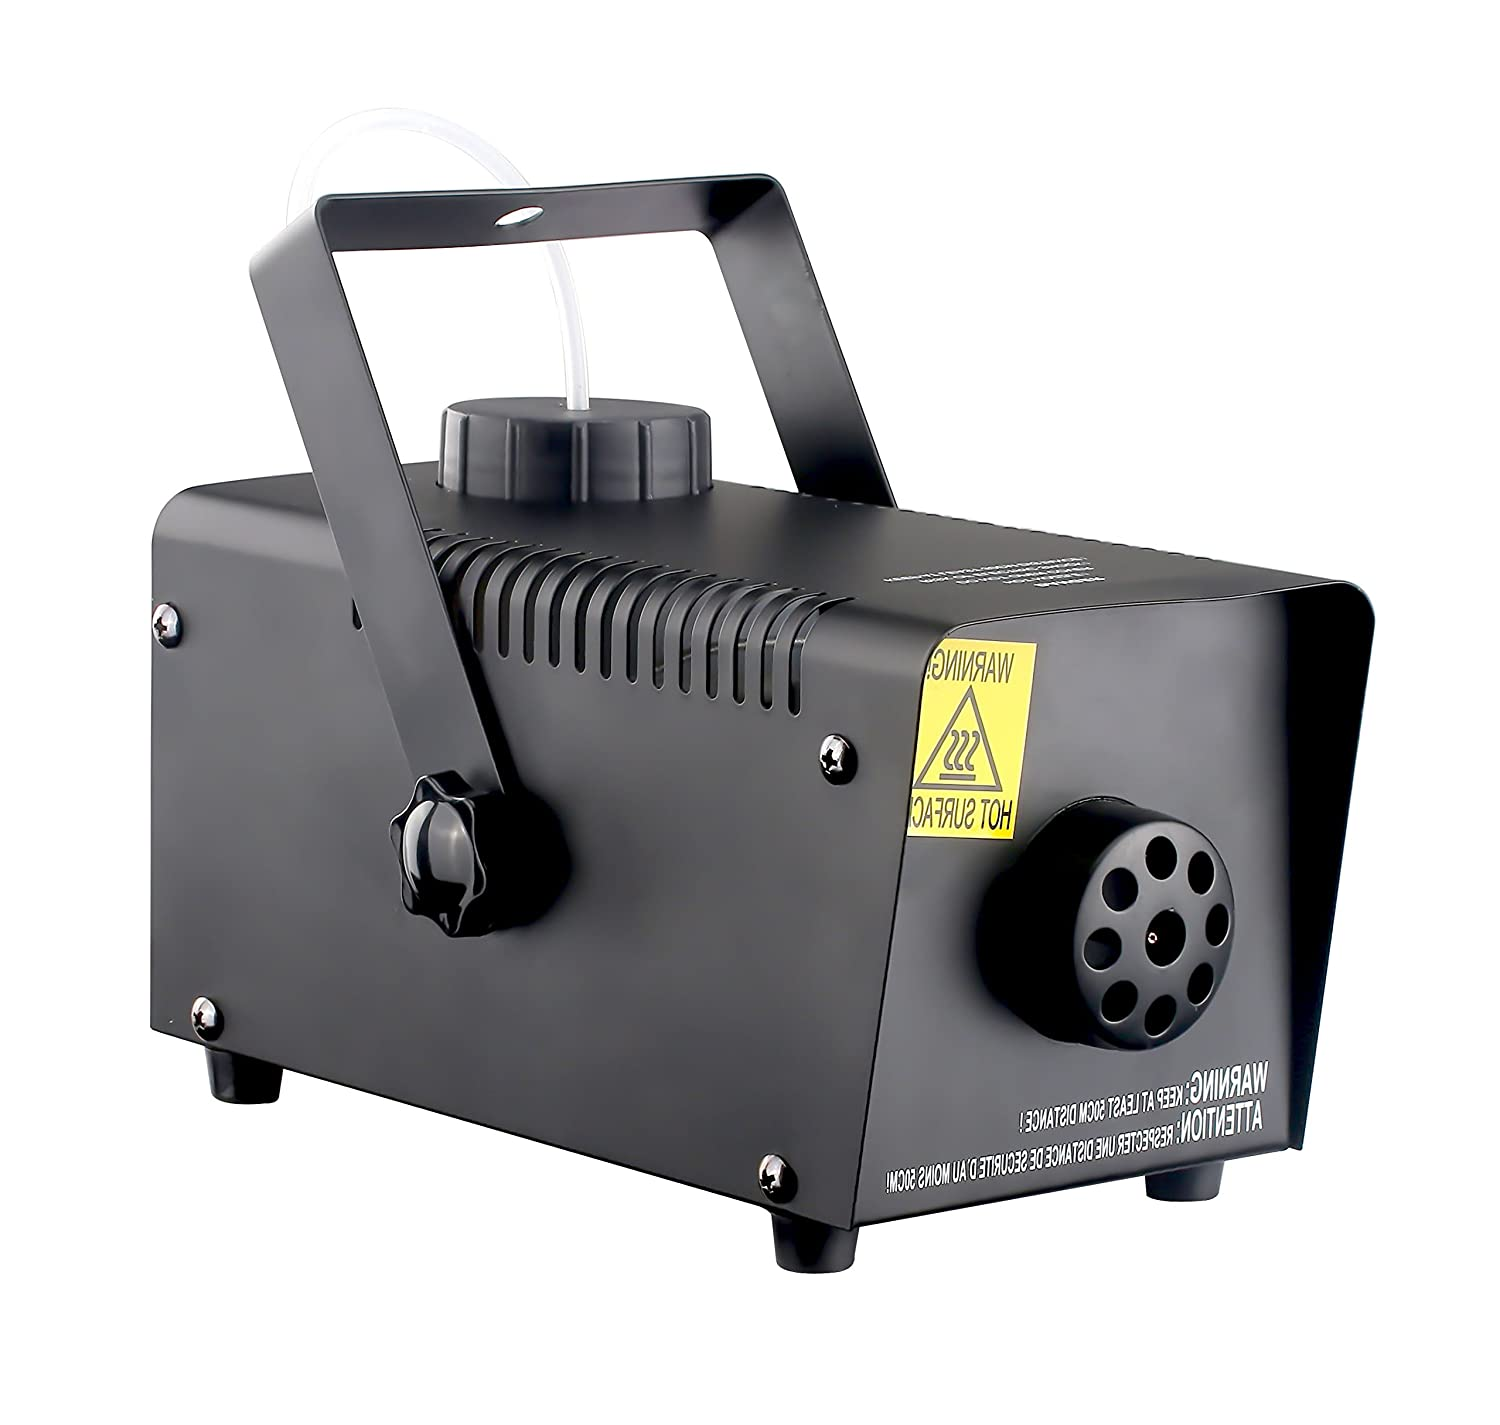 DragonX 400-Watts Portable Professional Water-Based Fog Machine with Wired Remote Controller Ground Fogger